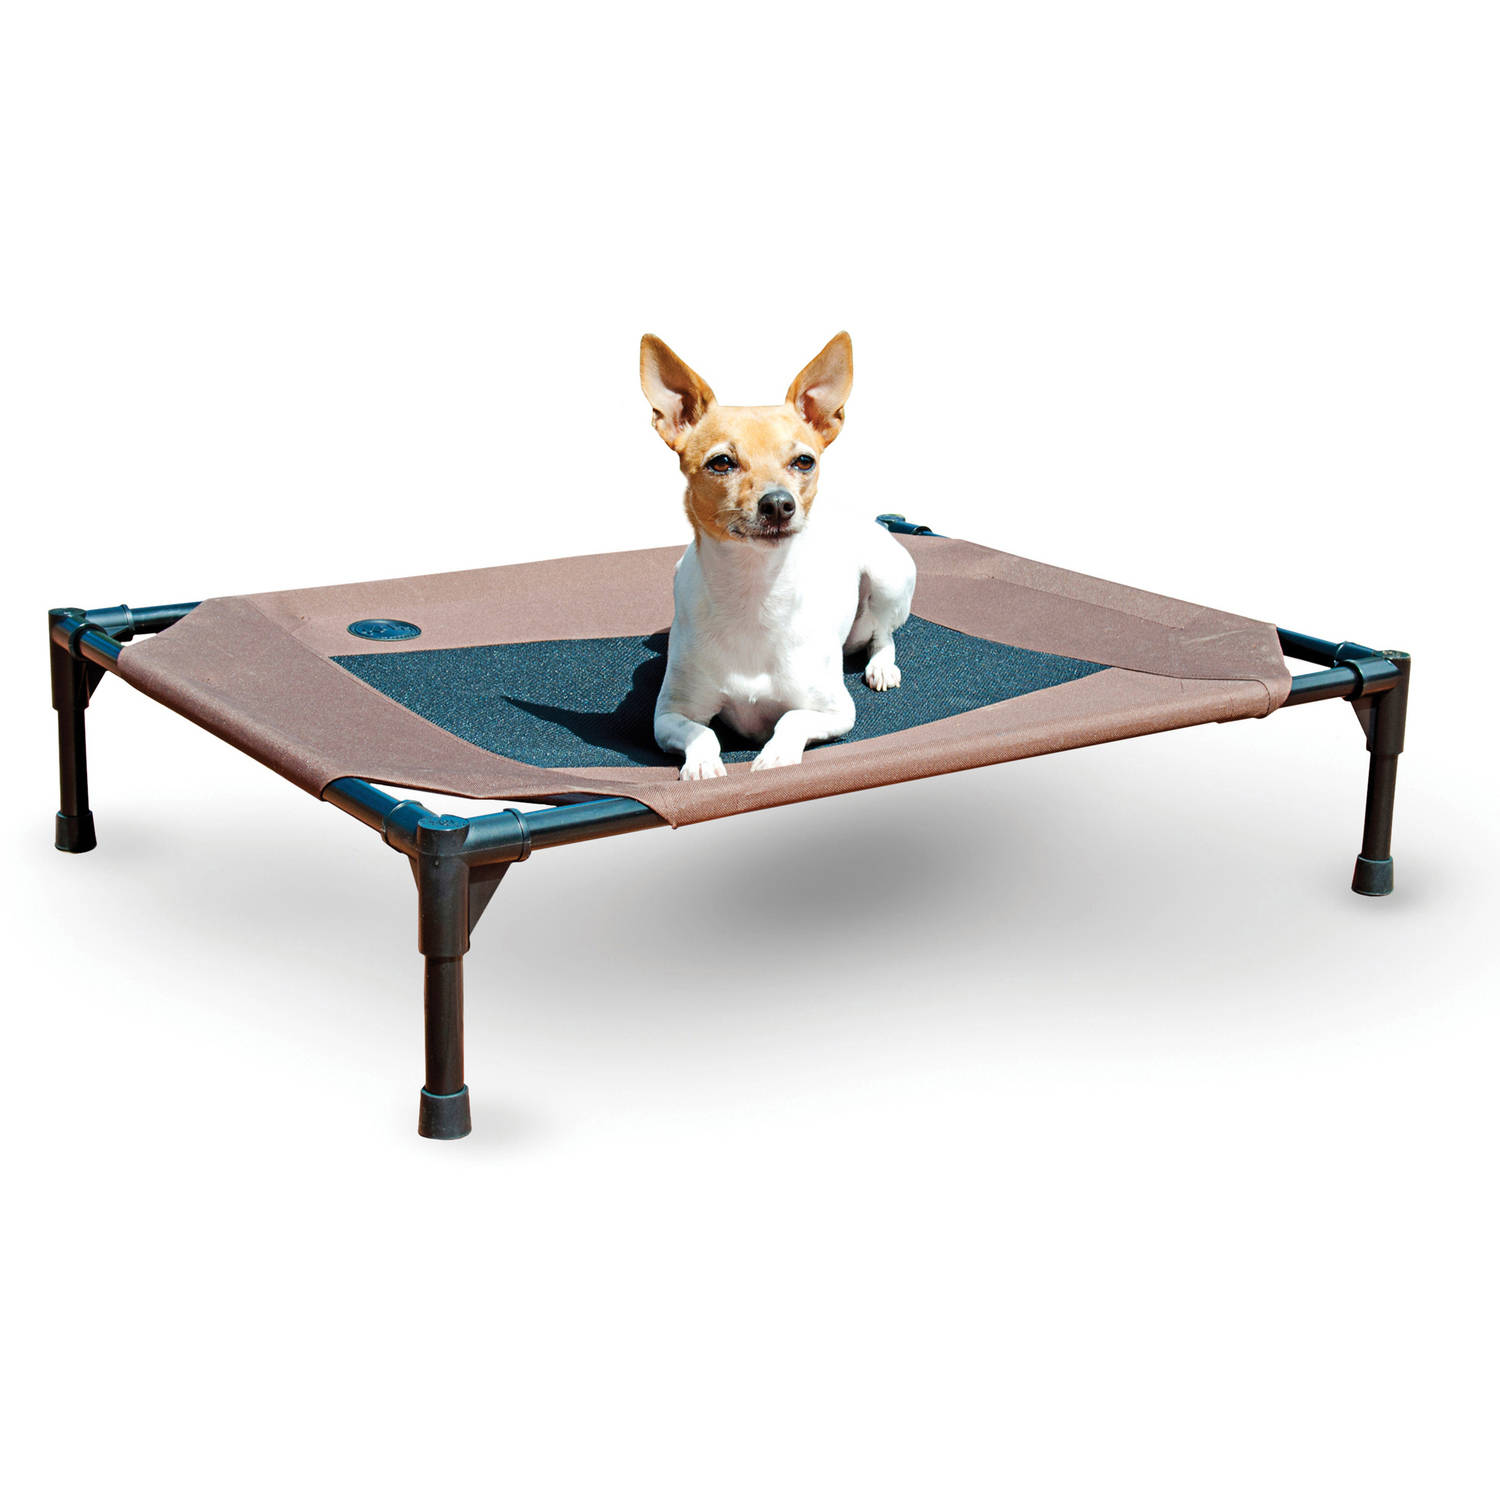 K&H Pet Products Original Pet Cot, Medium, Chocolate/Mesh